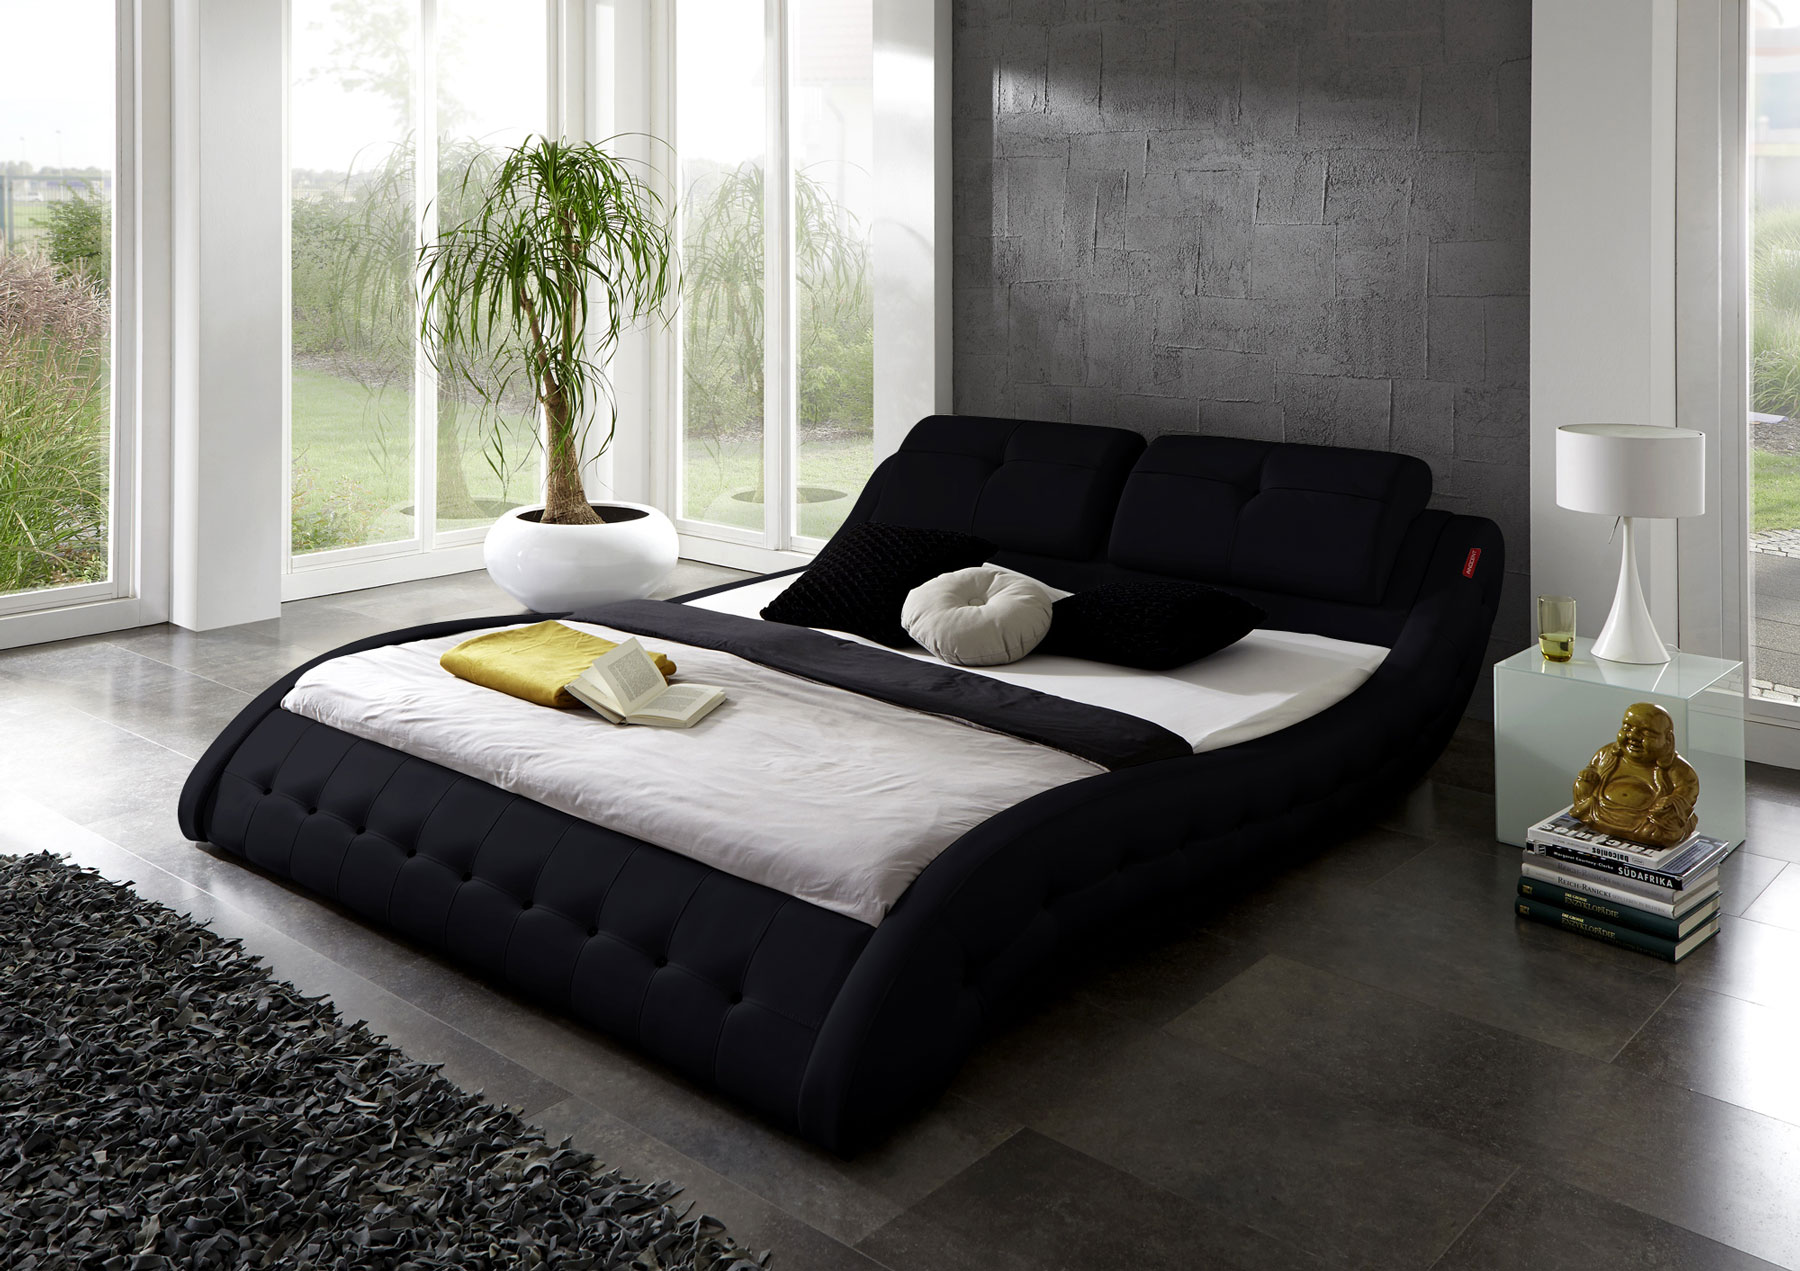 sam polsterbett 140 x 200 cm innocent mood farbauswahl. Black Bedroom Furniture Sets. Home Design Ideas